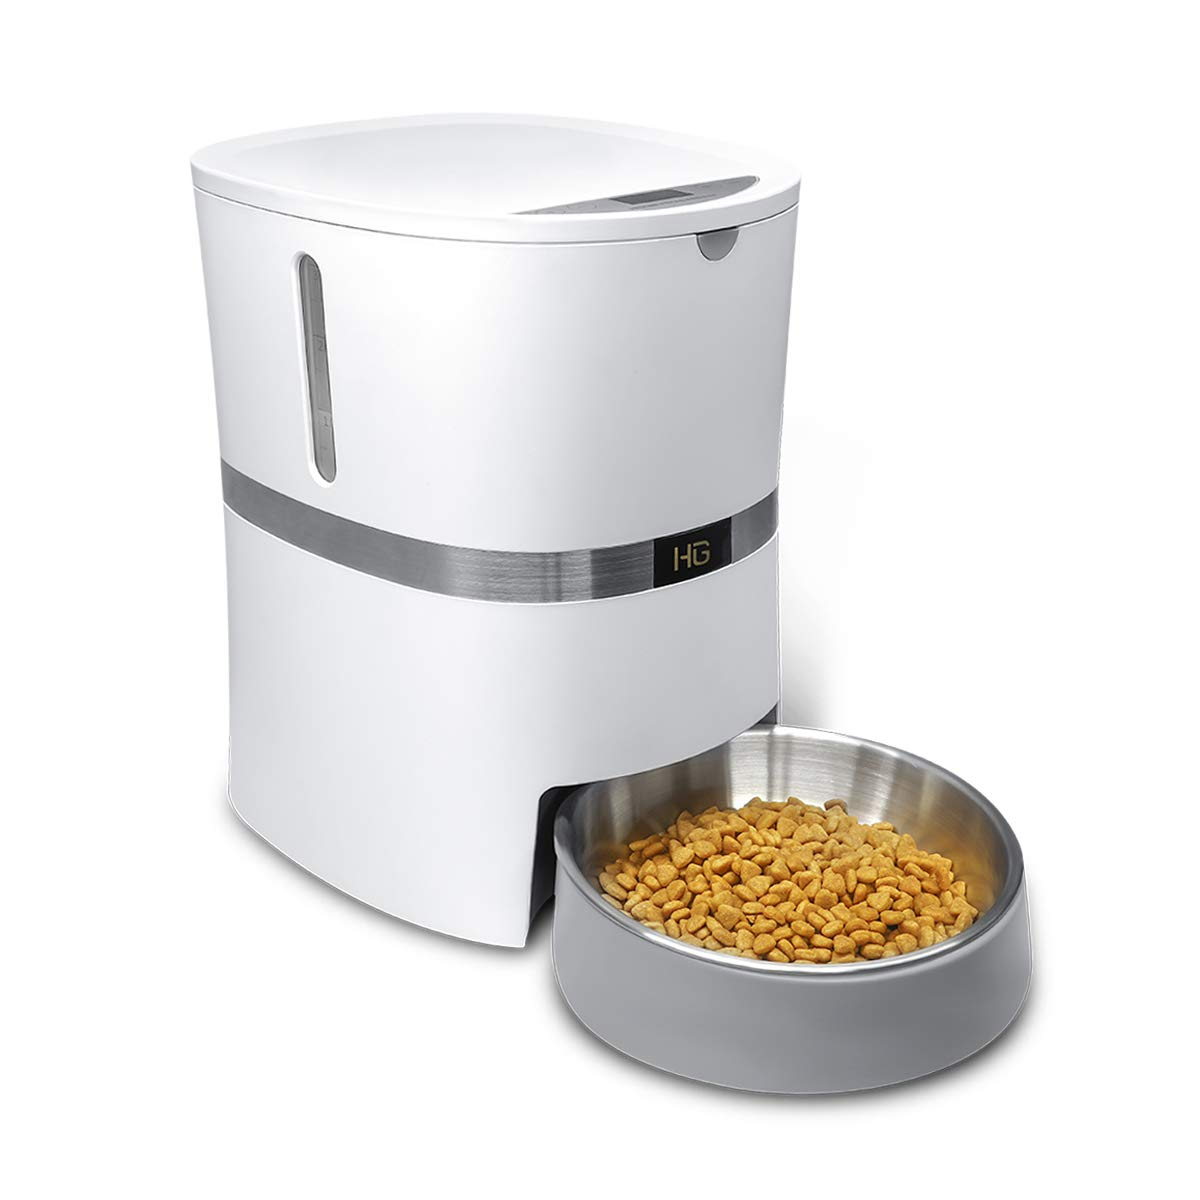 HoneyGuaridan A36 Automatic Cat Feeder, Pet Automatic Food Dispenser with Stainless Steel Food Bowl, Designed for Cat, Small & Medium-Sized Dog, Rabbit- Batteries and Adapter Power Support